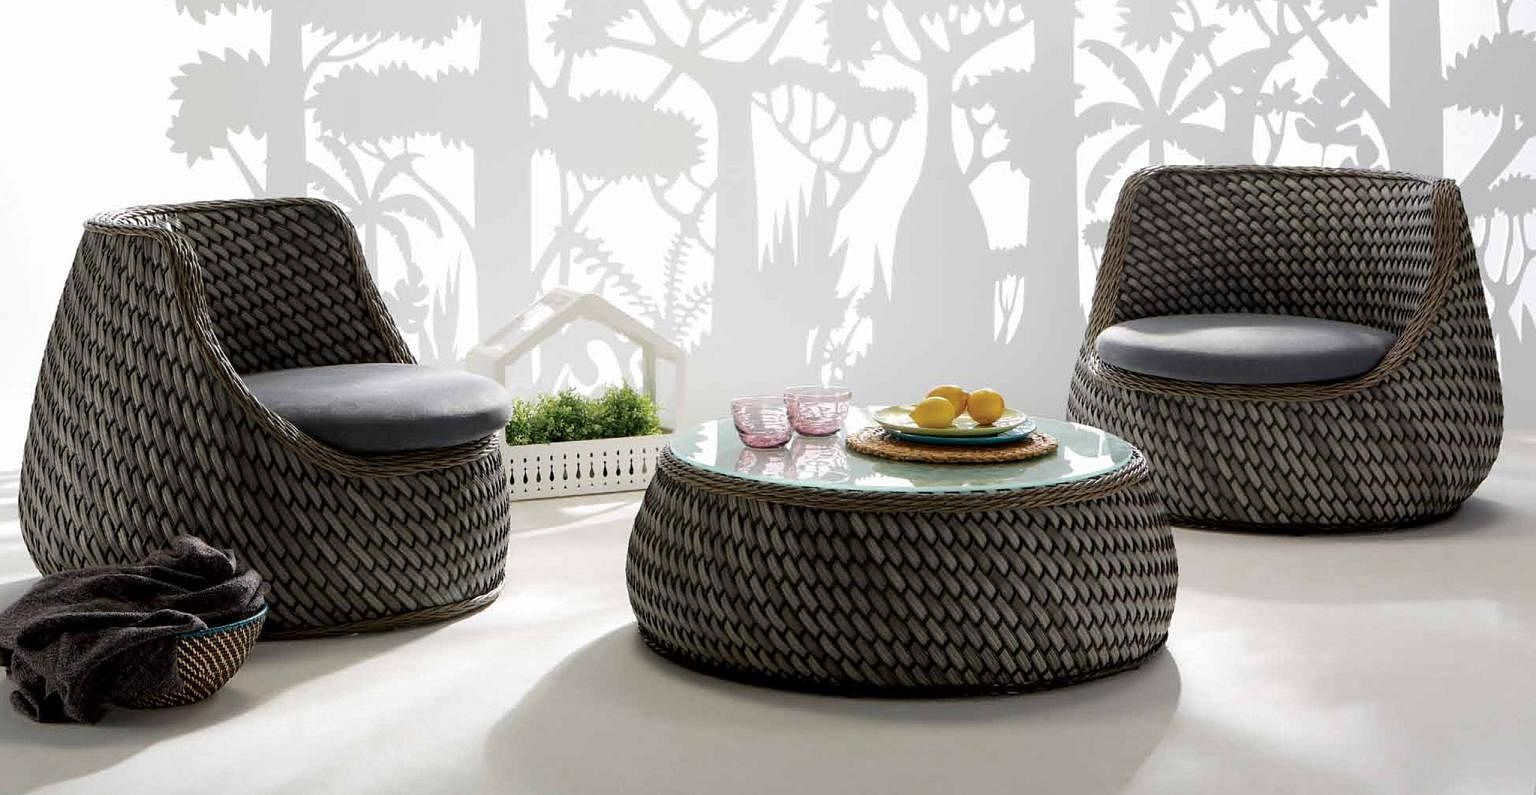 Jump in sales of outdoor furniture for balconies home design news top stories the straits times